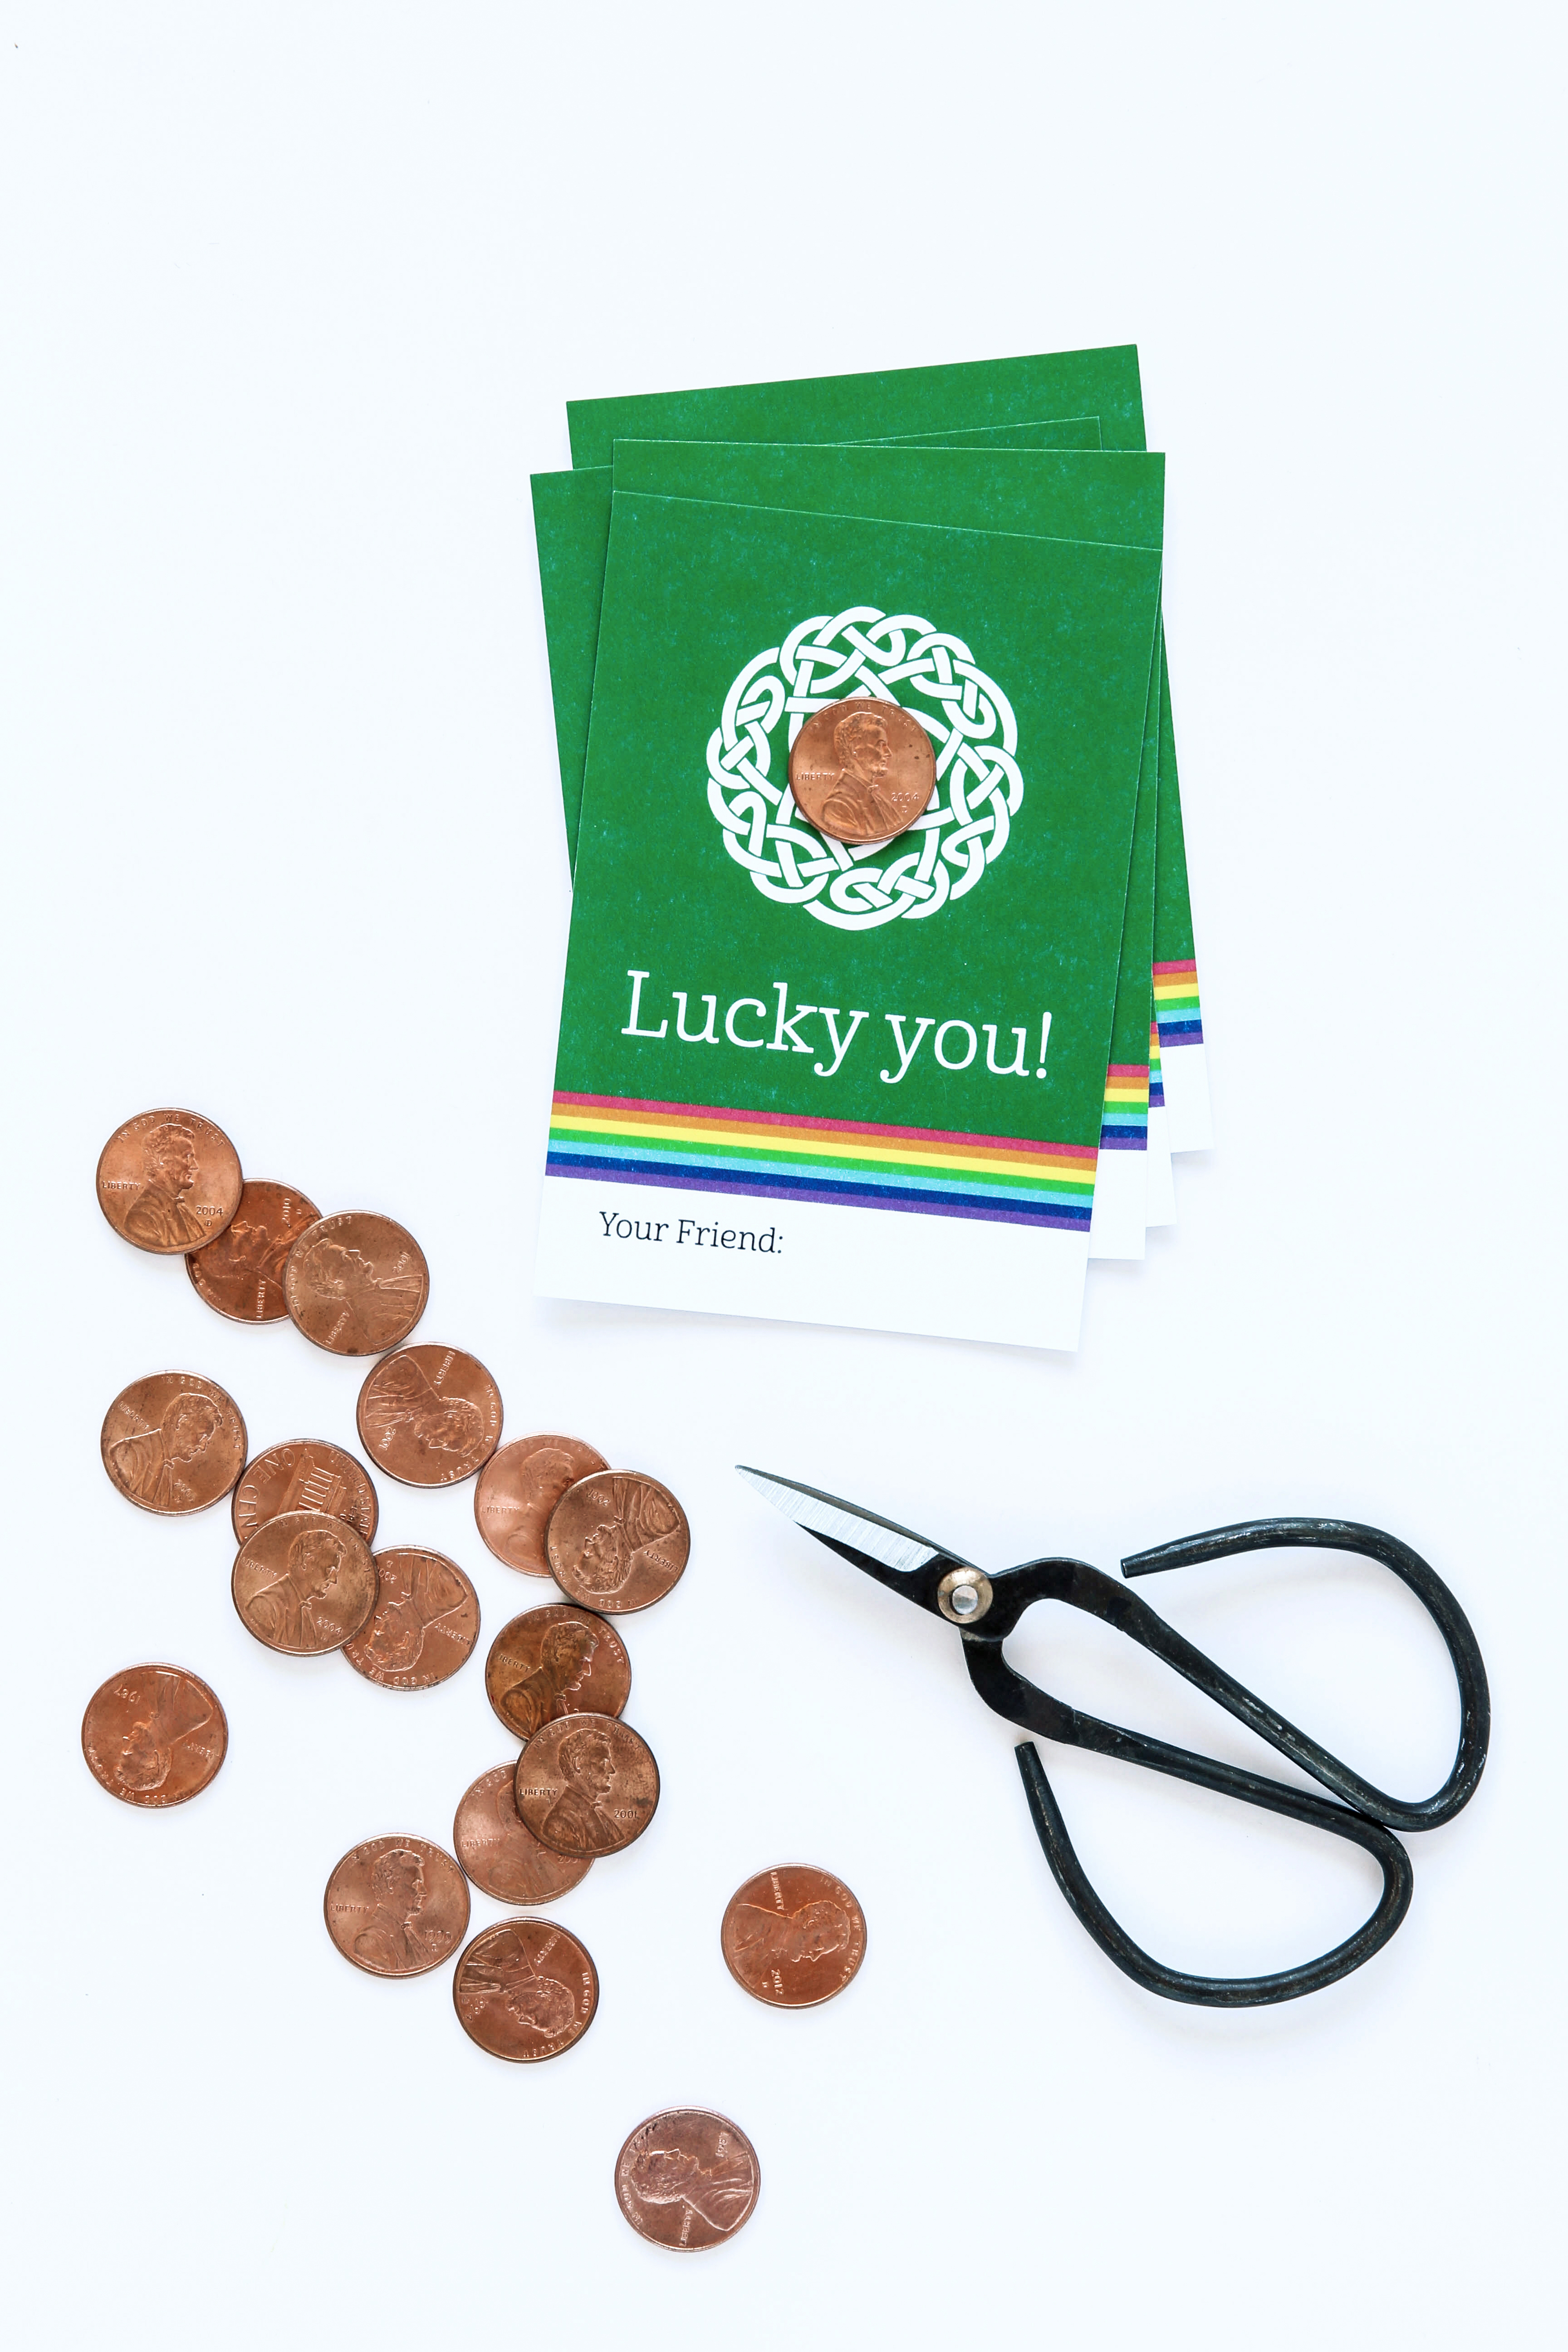 lucky penny card   how to shine pennies